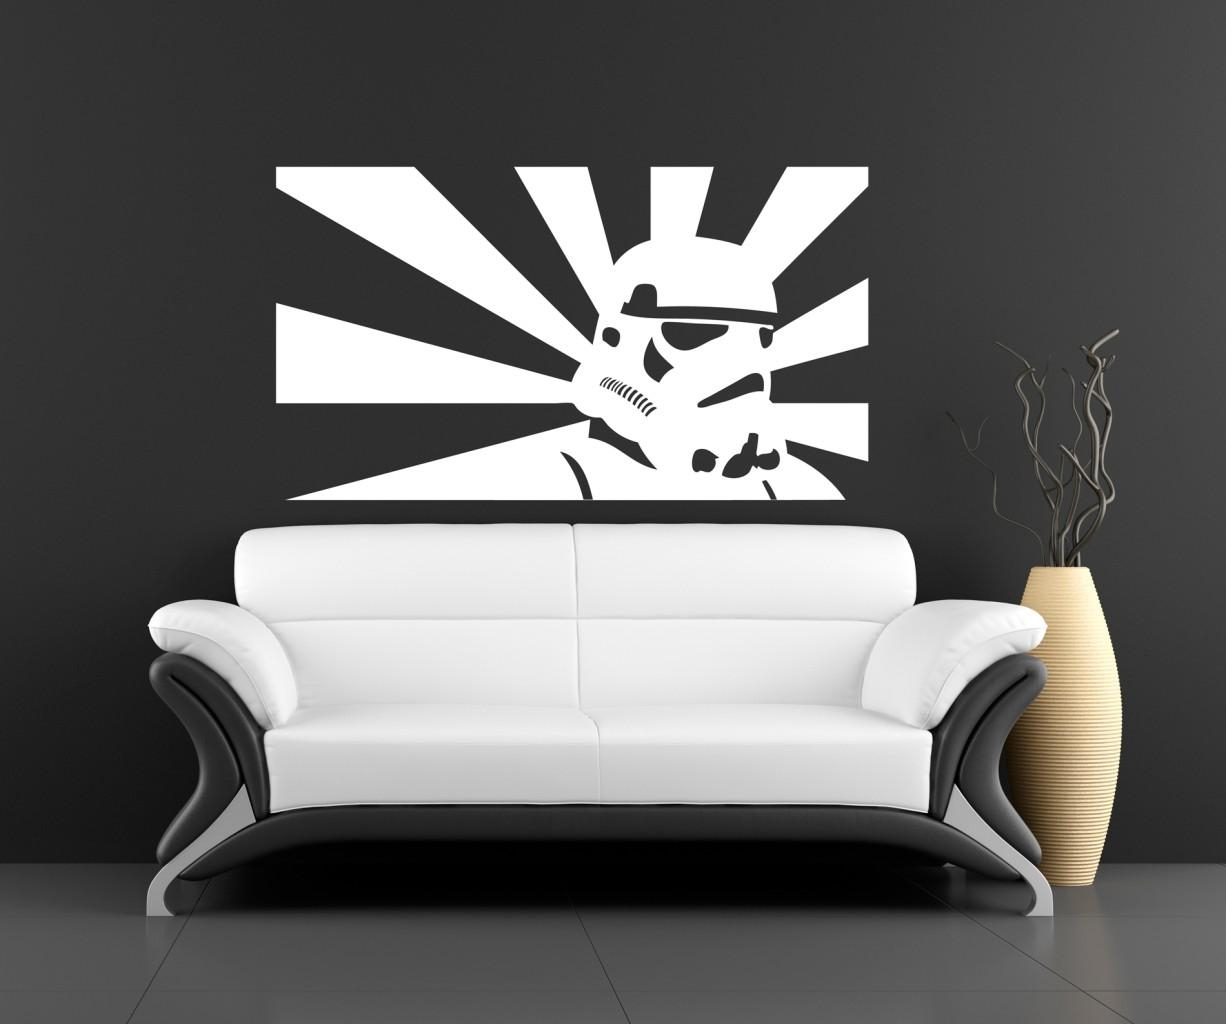 45 Best Star Wars Room Ideas For 2017 Intended For Diy Star Wars Wall Art (View 18 of 20)